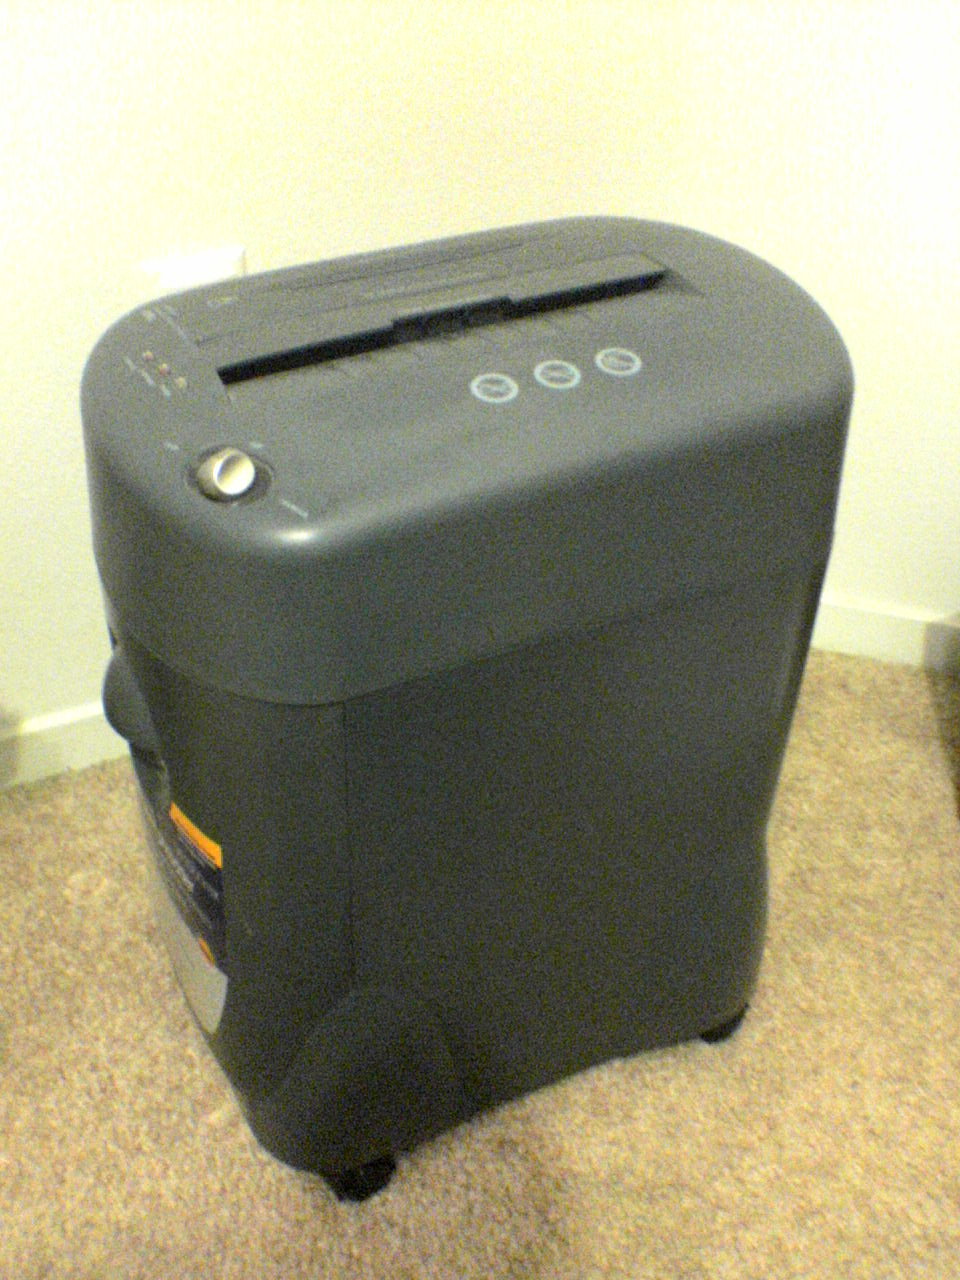 768b0f1f6 Paper Shredder.jpg